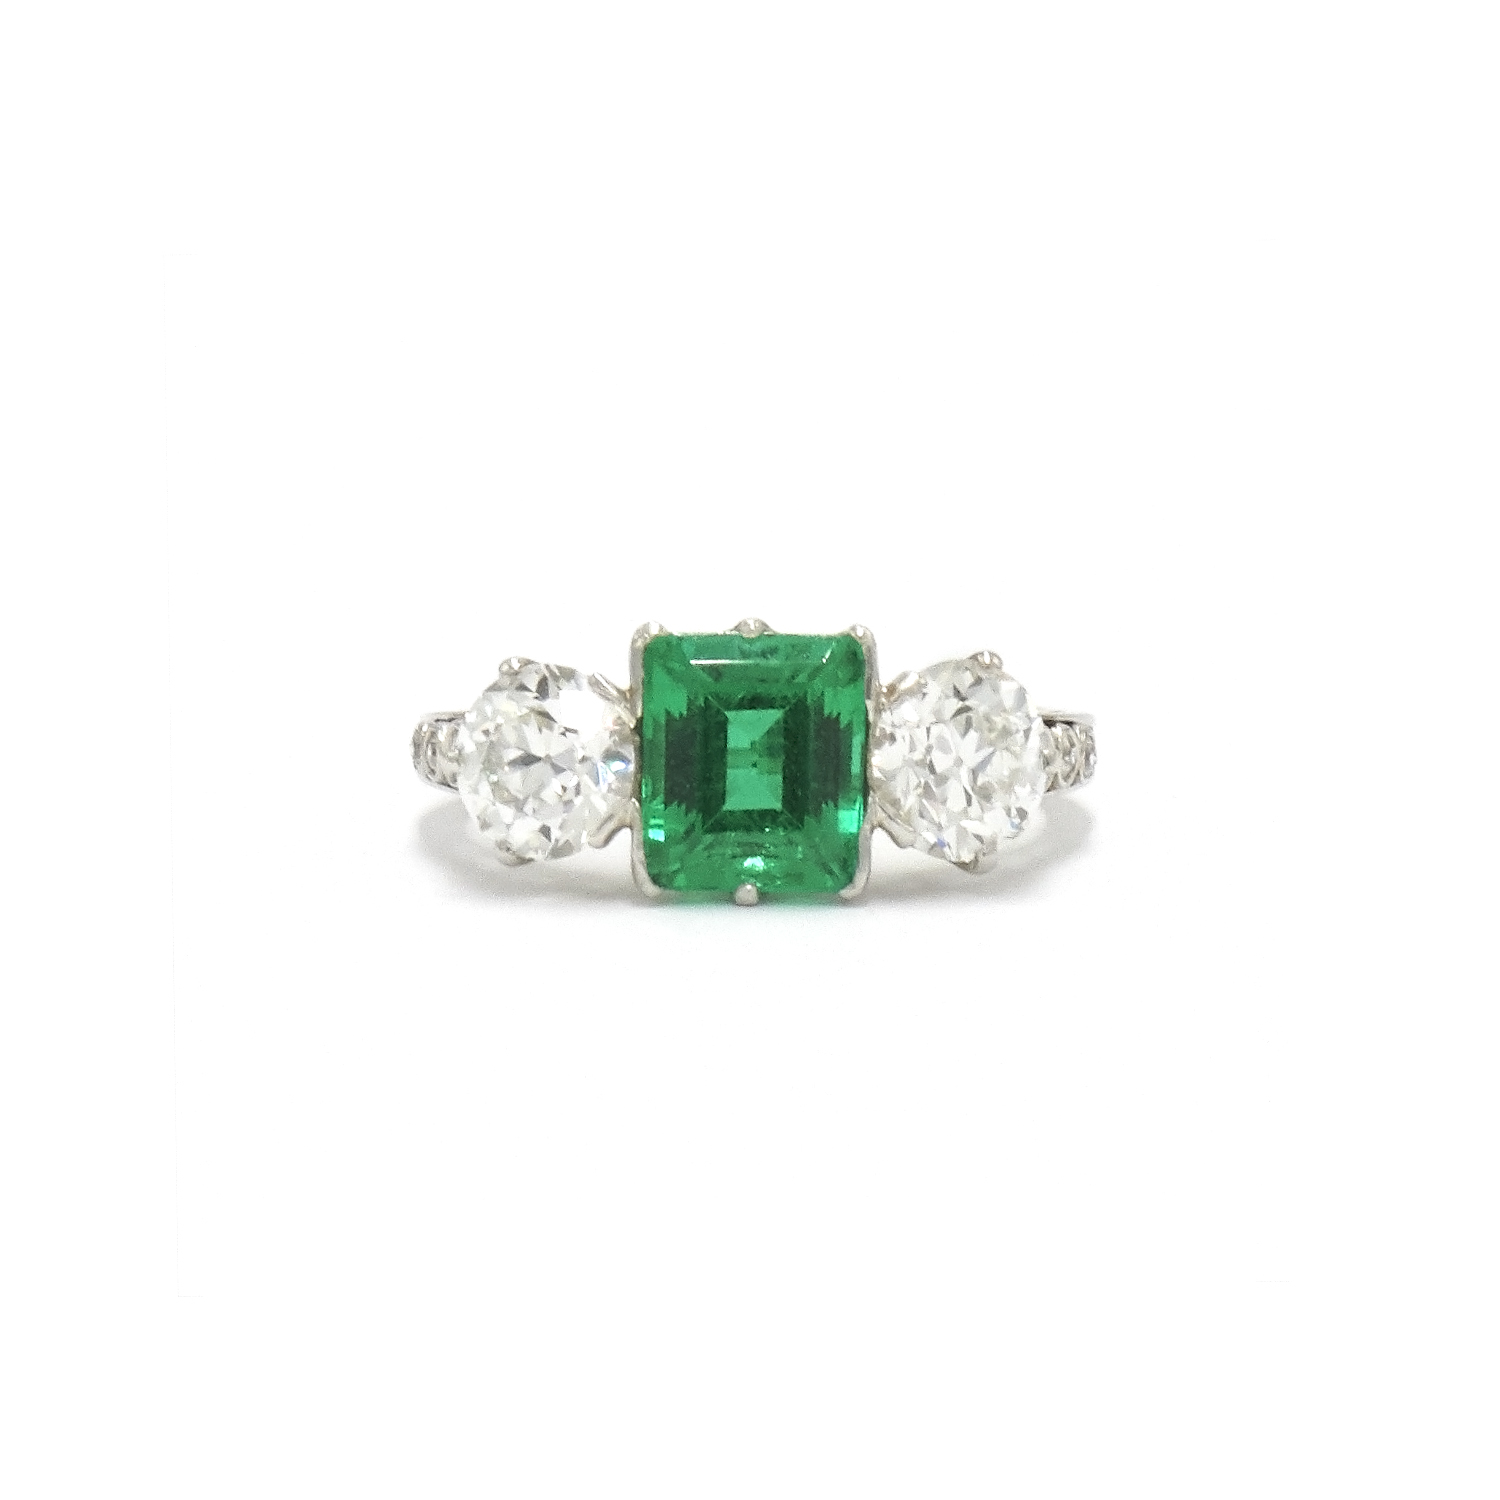 Art Deco Colombian Emerald and Diamond Ring by Tiffany & Co. Style F-38978-FL-0-0